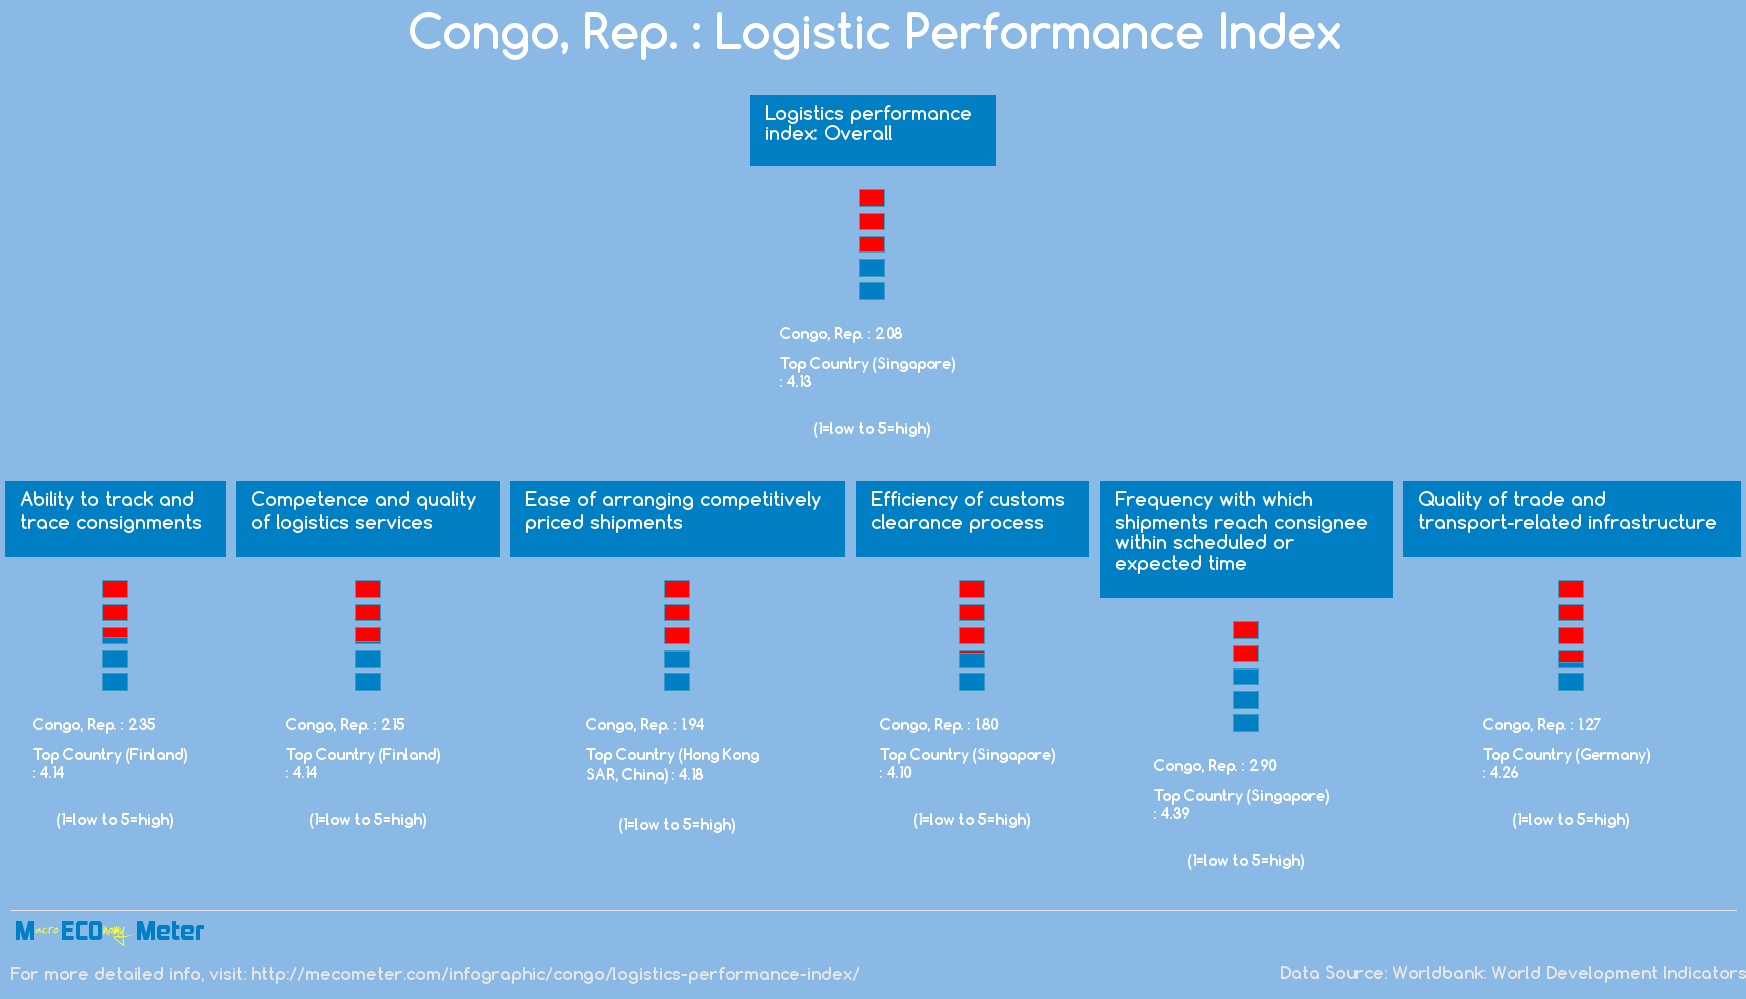 Congo, Rep. : Logistic Performance Index